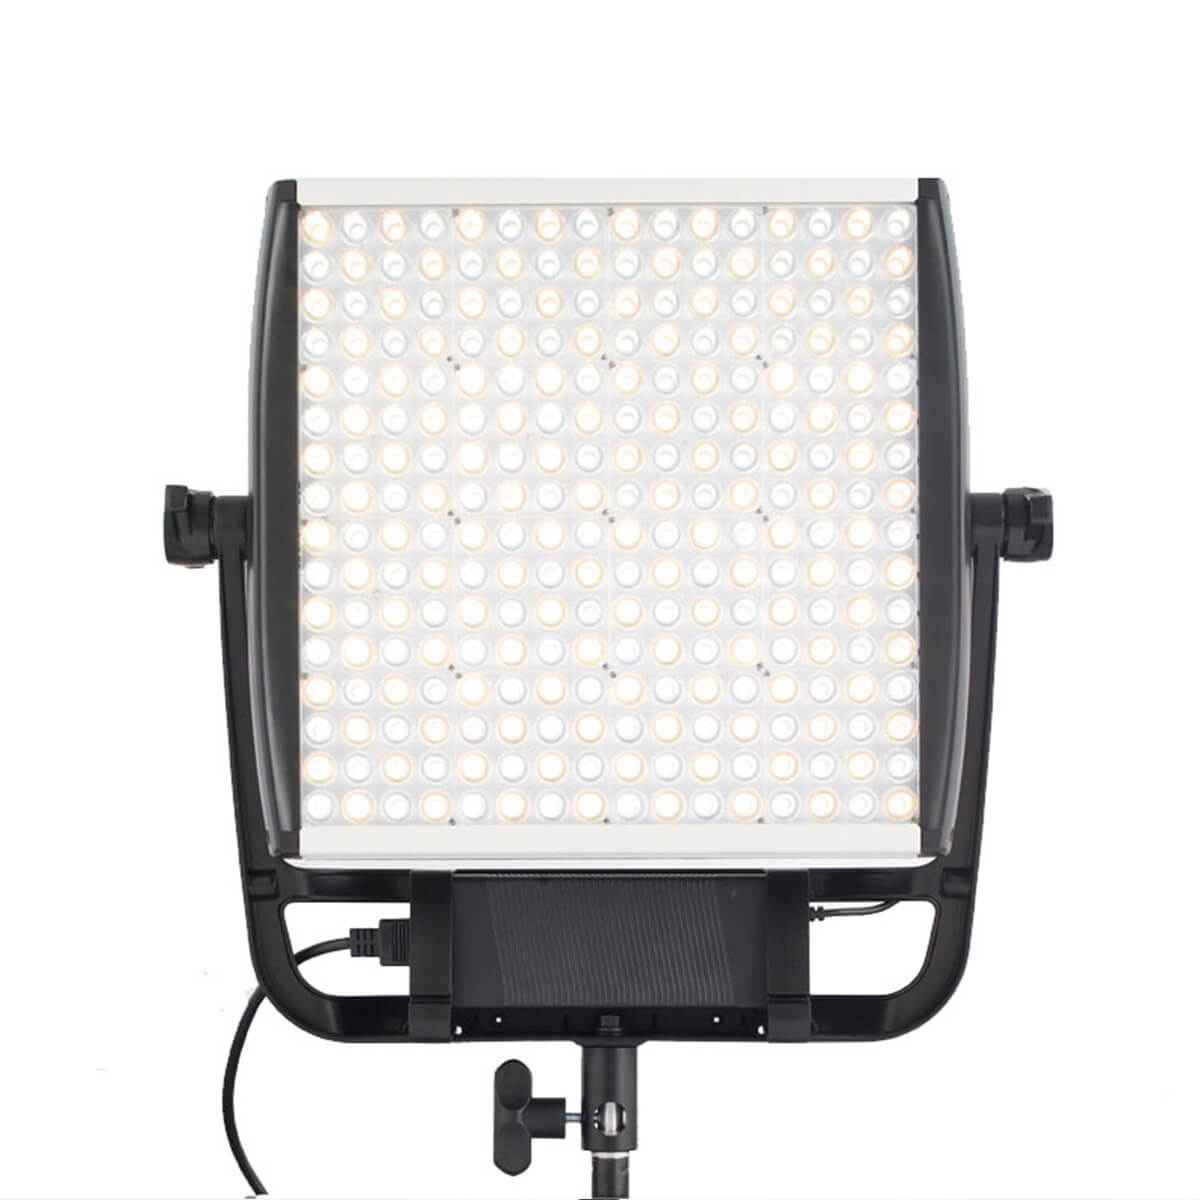 Litepanels Astra 1x1 Bi-Color - Usado